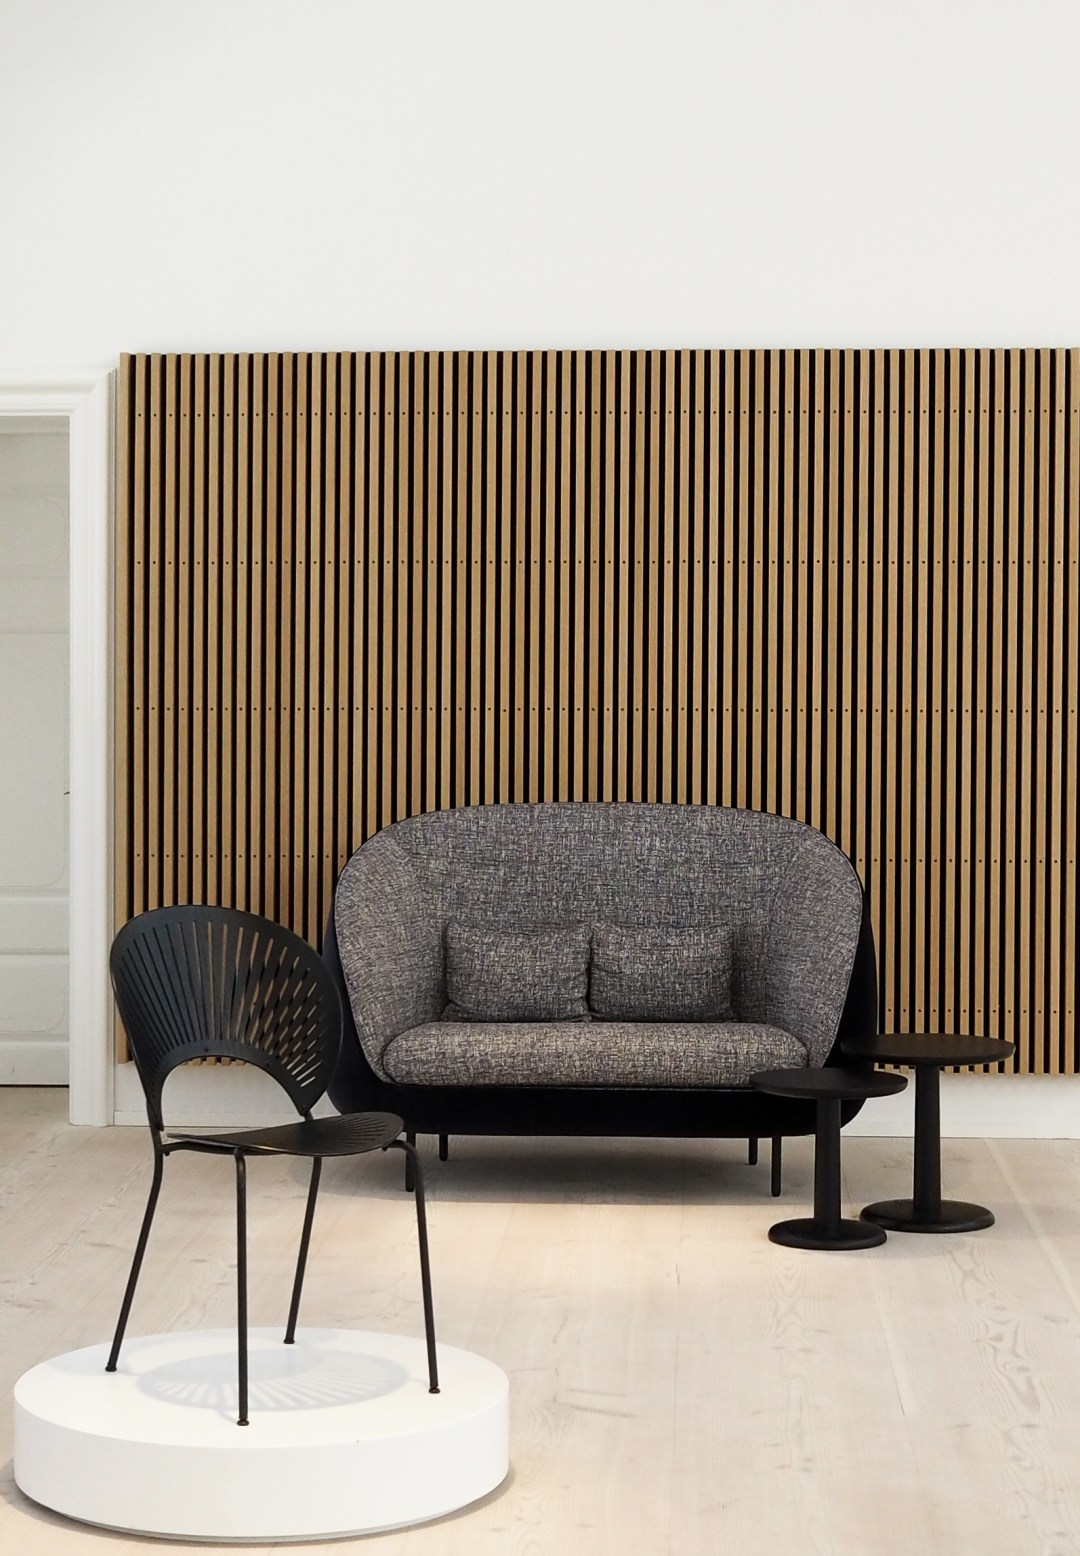 Danish Modern Furniture Design for Fredericia